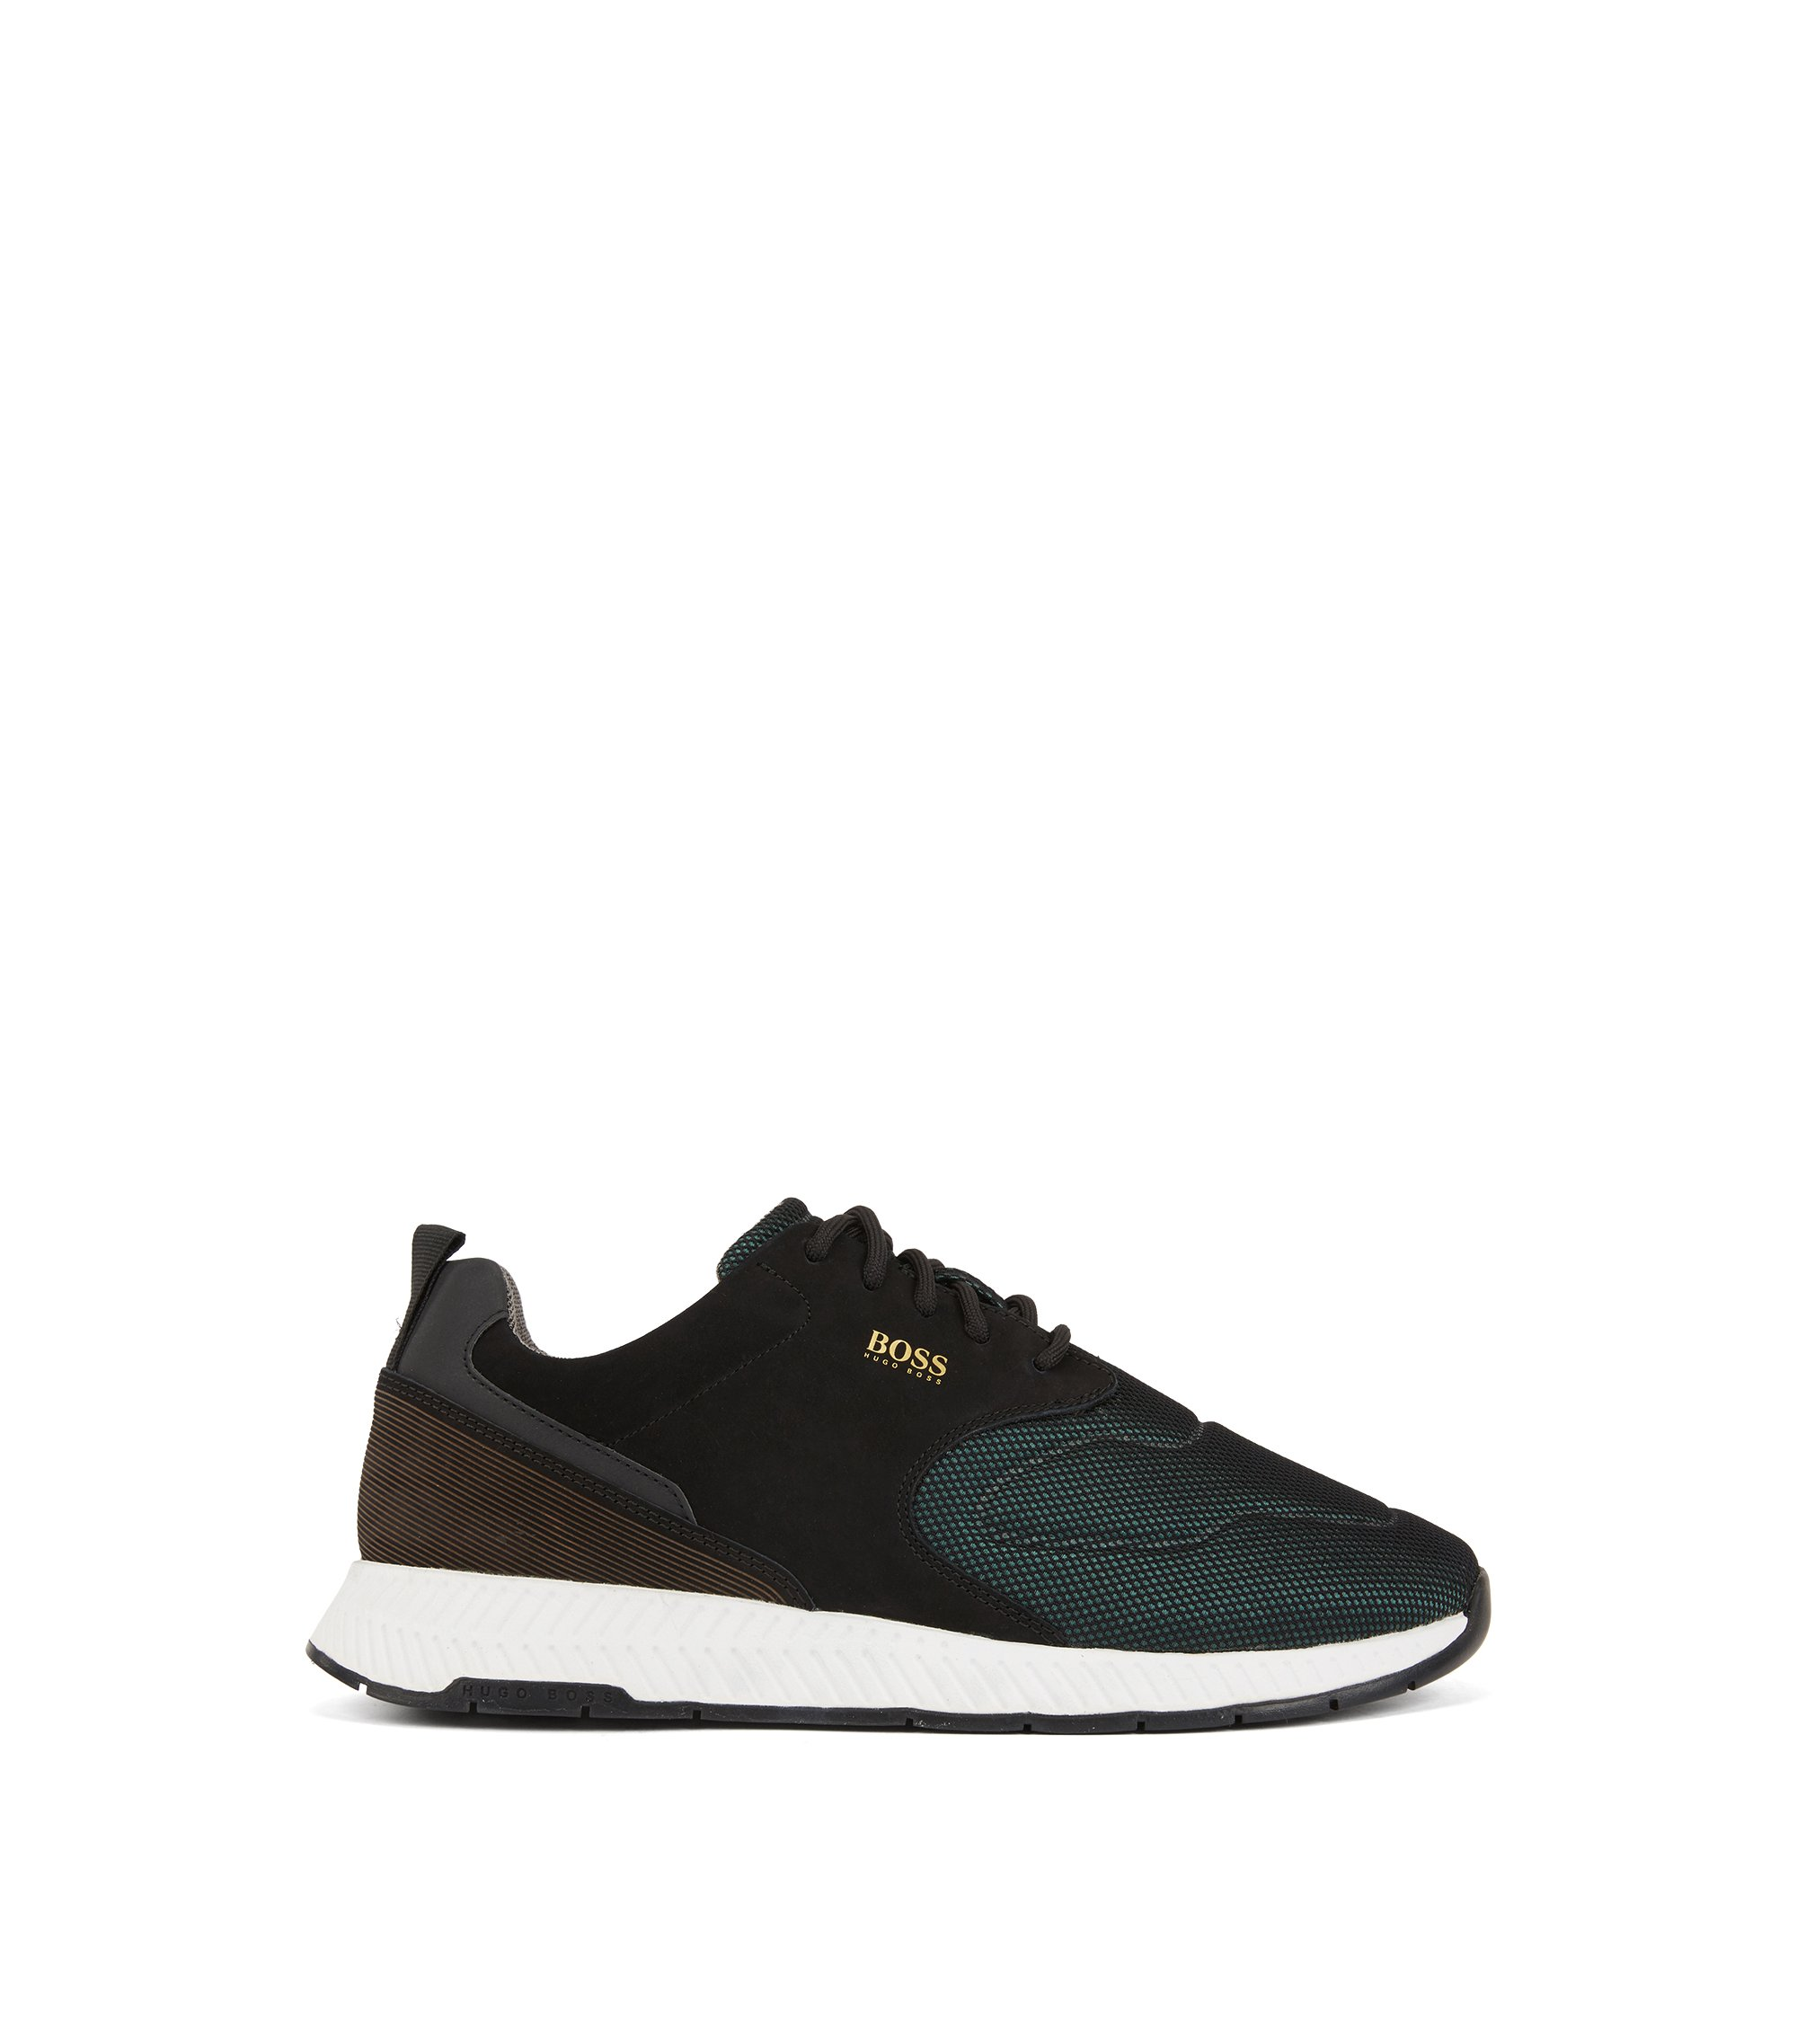 Running-inspired trainers in nubuck leather and technical fabric, Dark Green